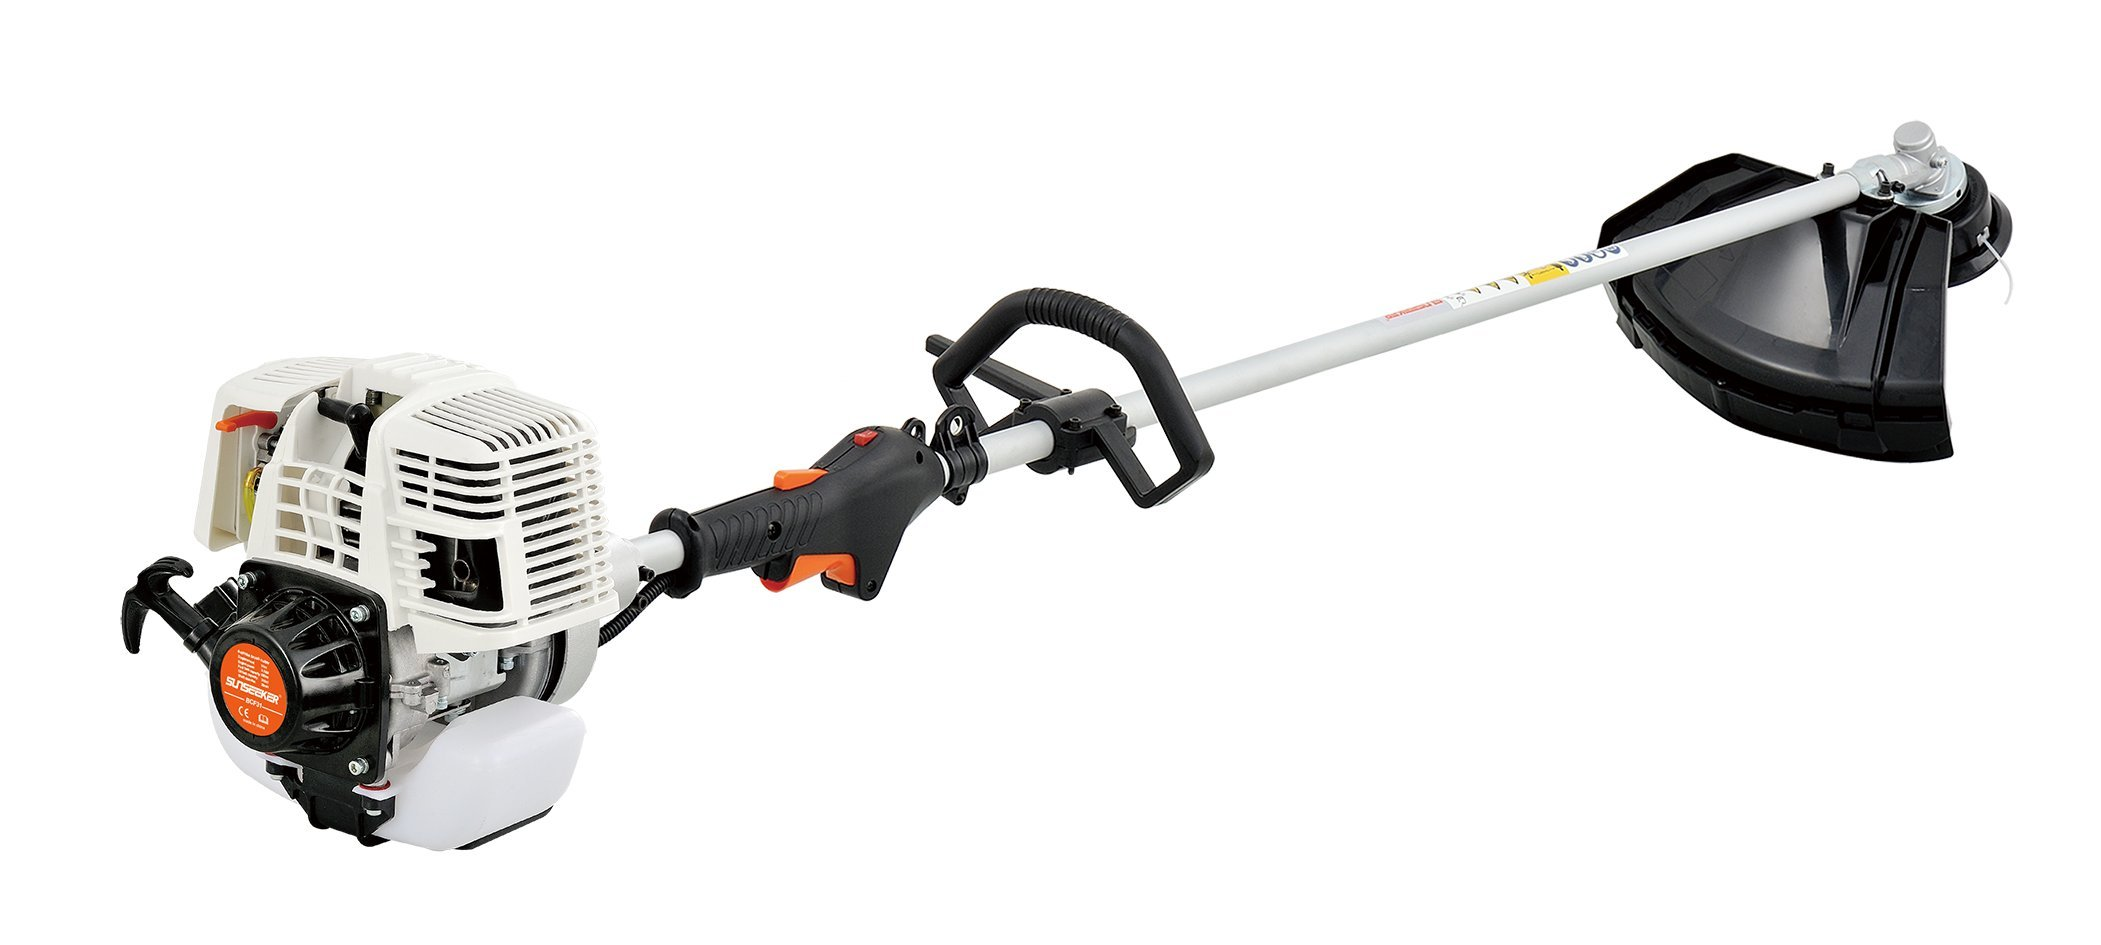 31CC 4 Cycle 2 in 1 Straight Shaft Grass Trimmer with Brush Cutter Blade and Bonus Harness